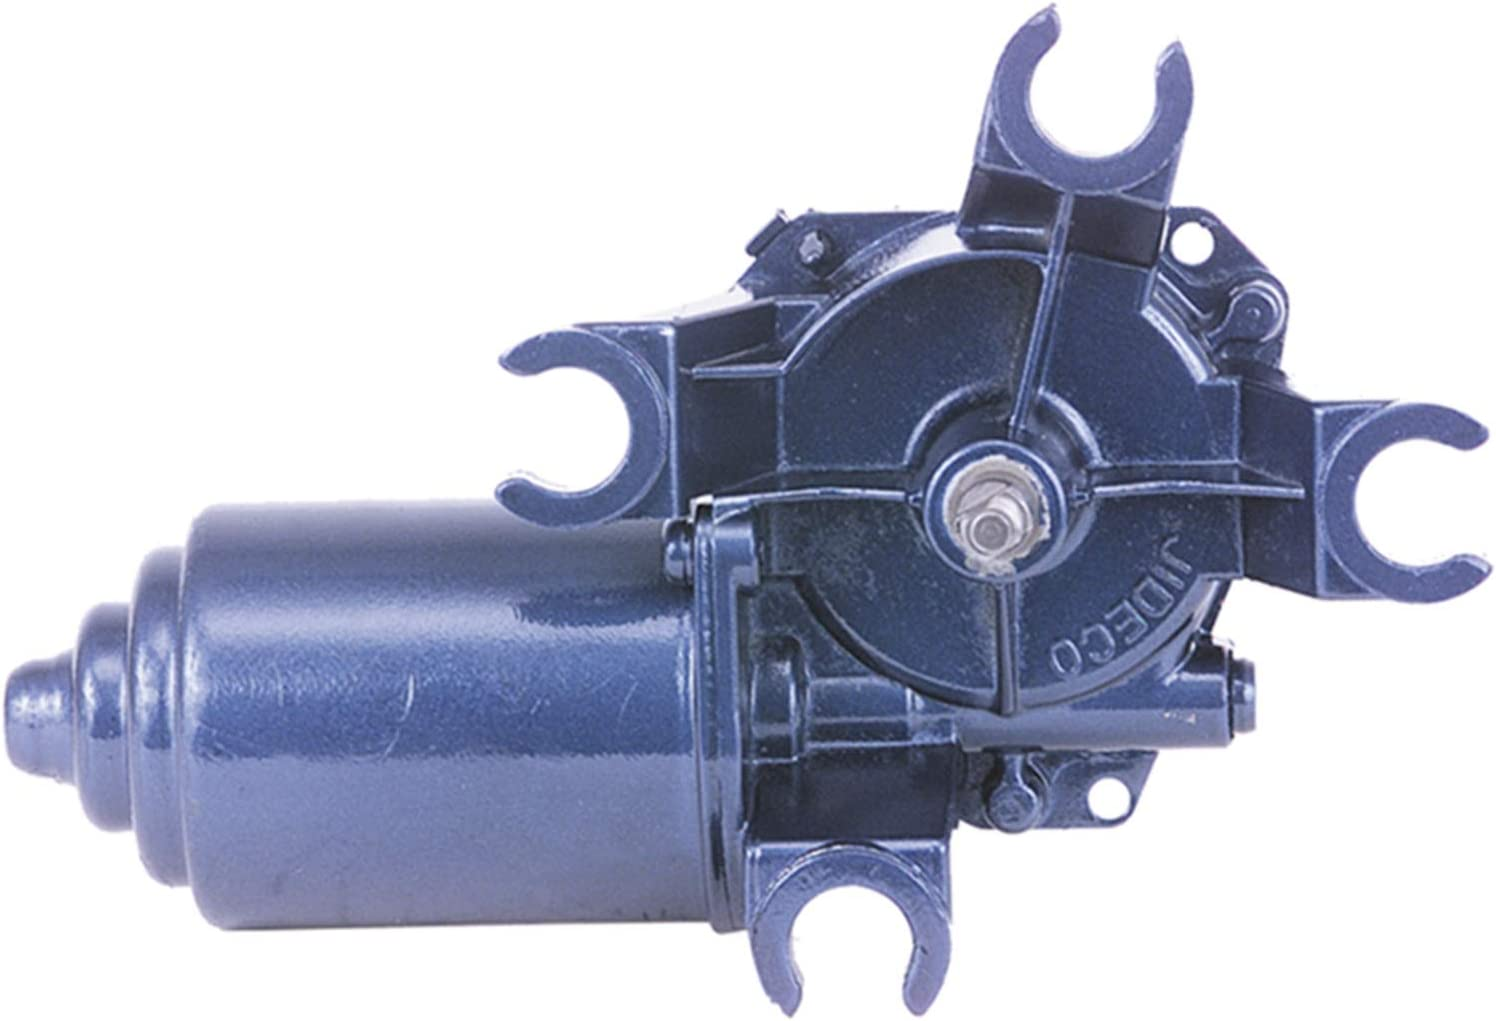 Gifts Cardone 43-1159 OFFicial mail order Remanufactured Motor Import Wiper